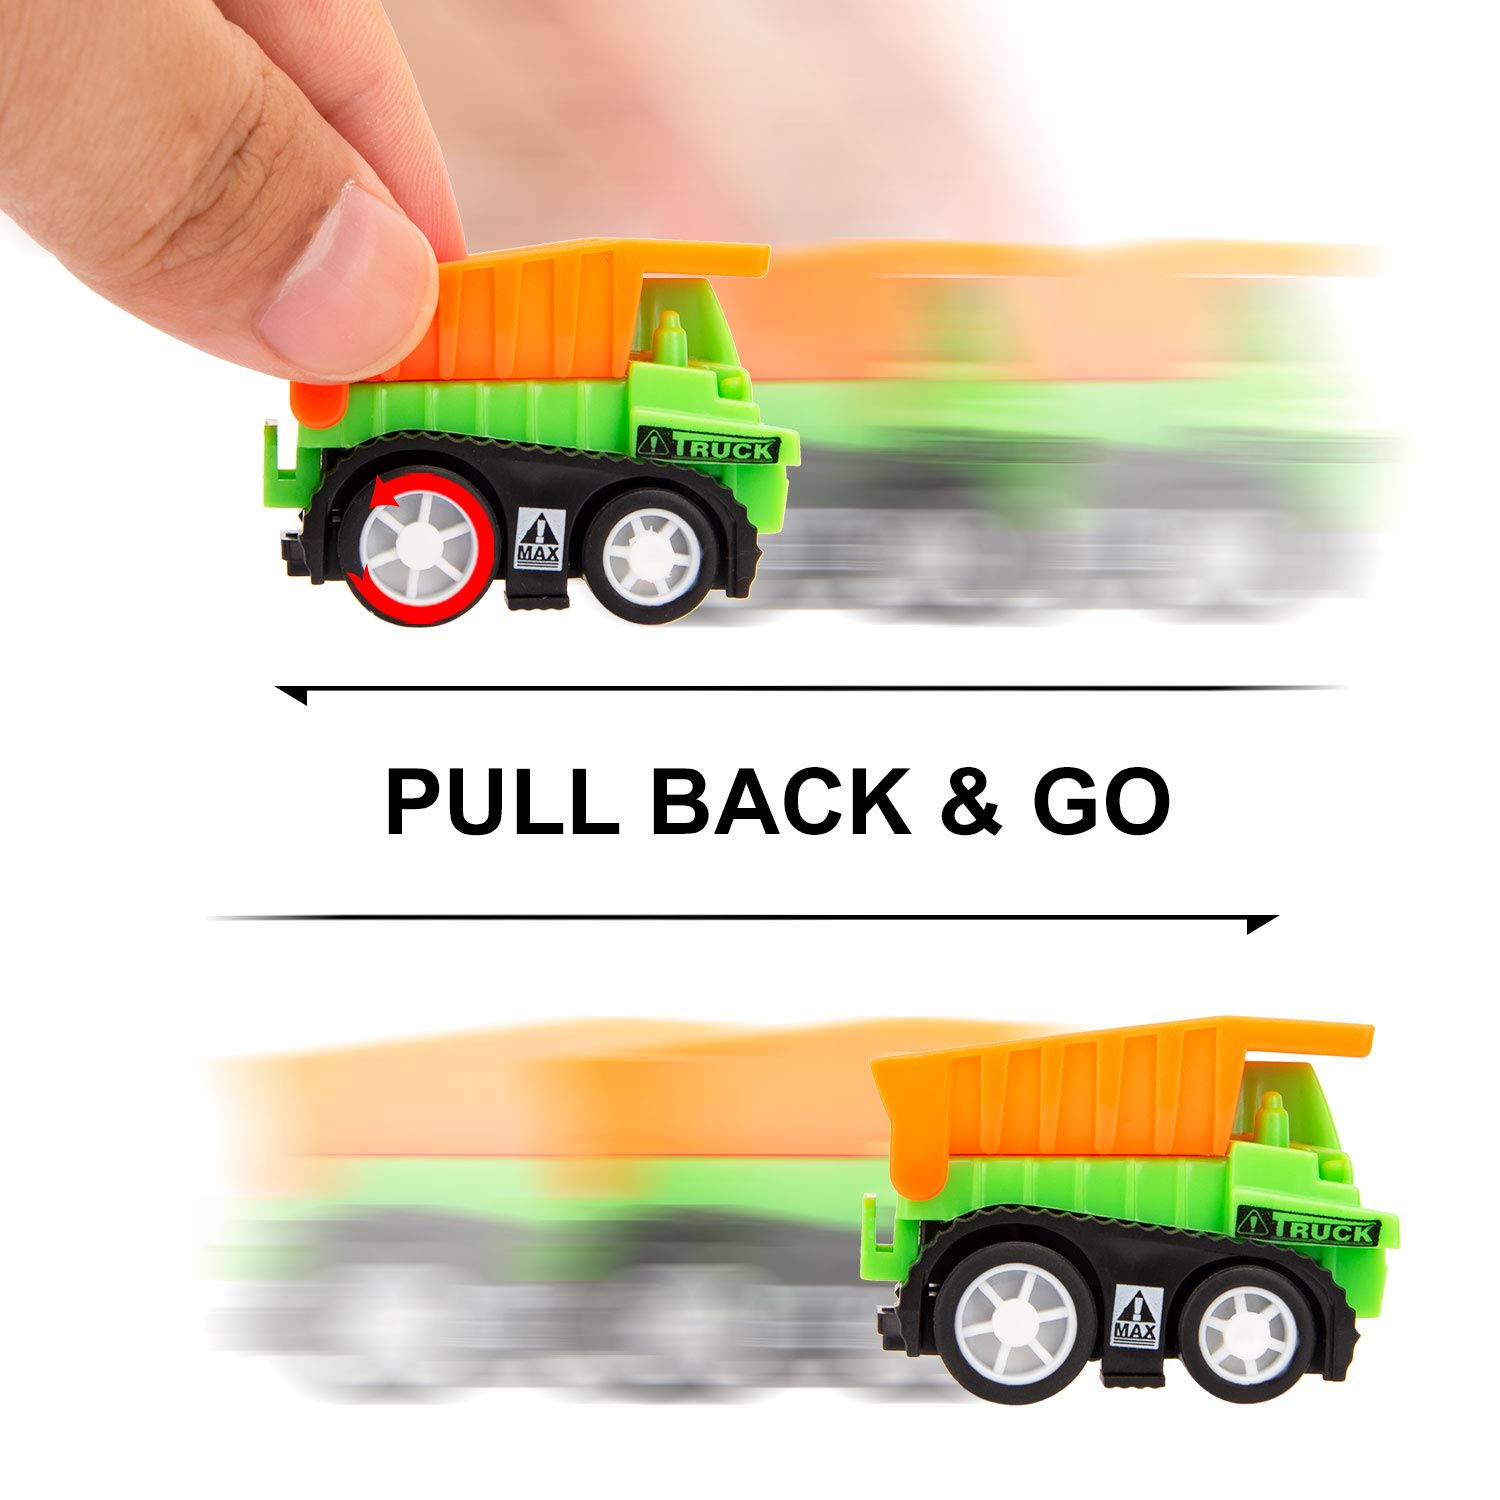 14 x 18 Construction Site Playmat Engineering Vehicle Sets 6 Construction Trucks 3 Road Signs Construction Vehicle Toys with Play Mat Mini Pull Back Car Toys